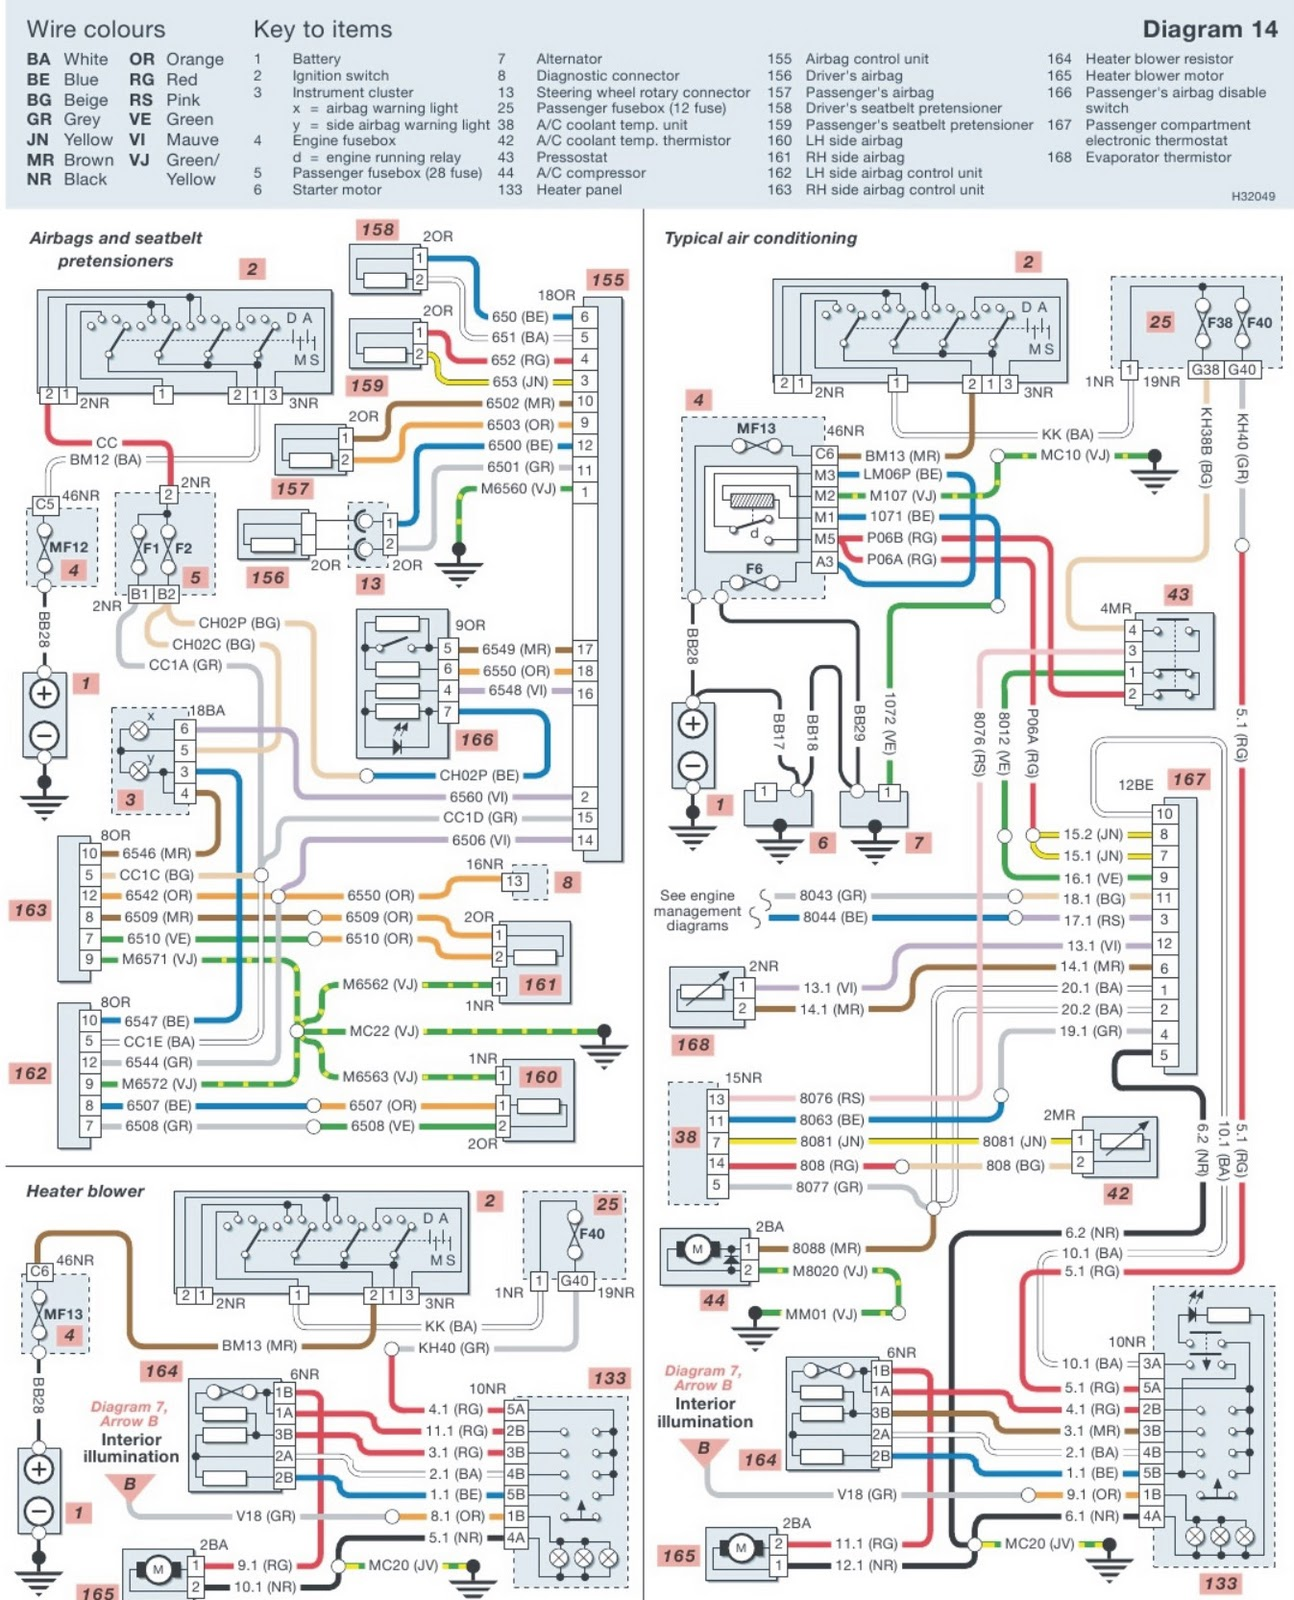 peugeot 206 alternator wiring diagram data wiring diagram peugeot 206 iso wiring diagram wiring diagram centre [ 1294 x 1600 Pixel ]